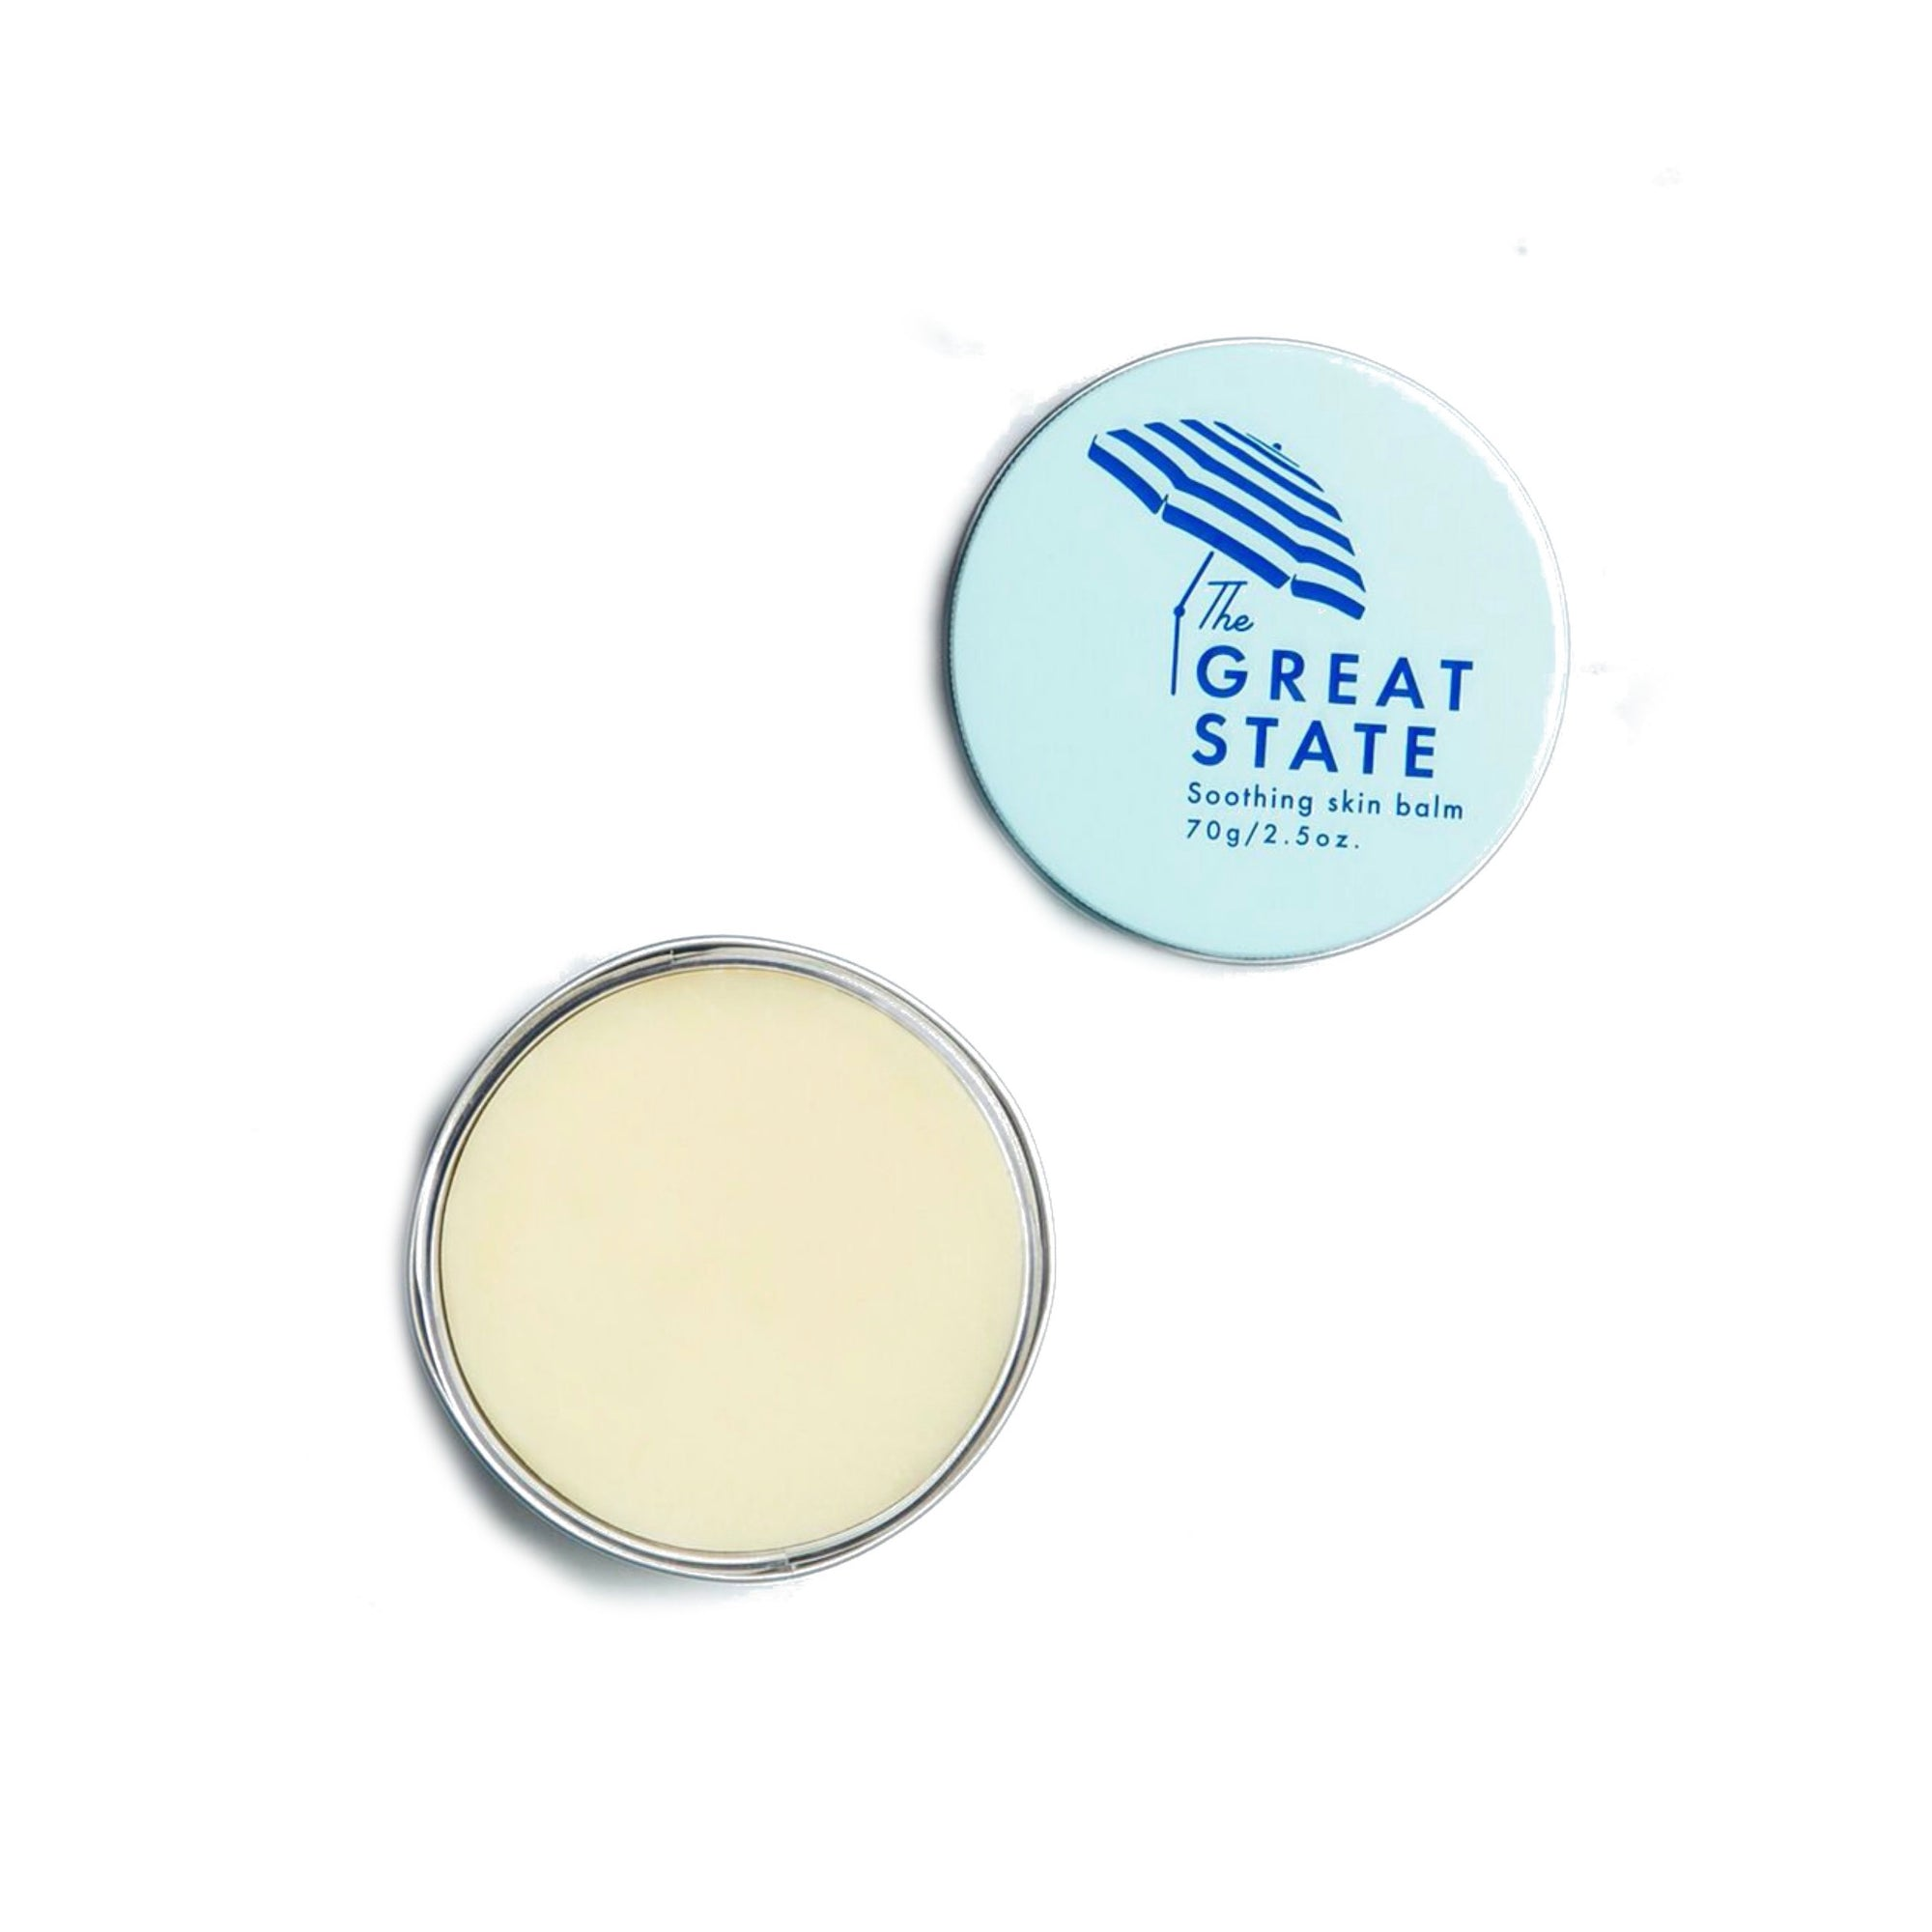 The Great State - Soothing Skin Balm